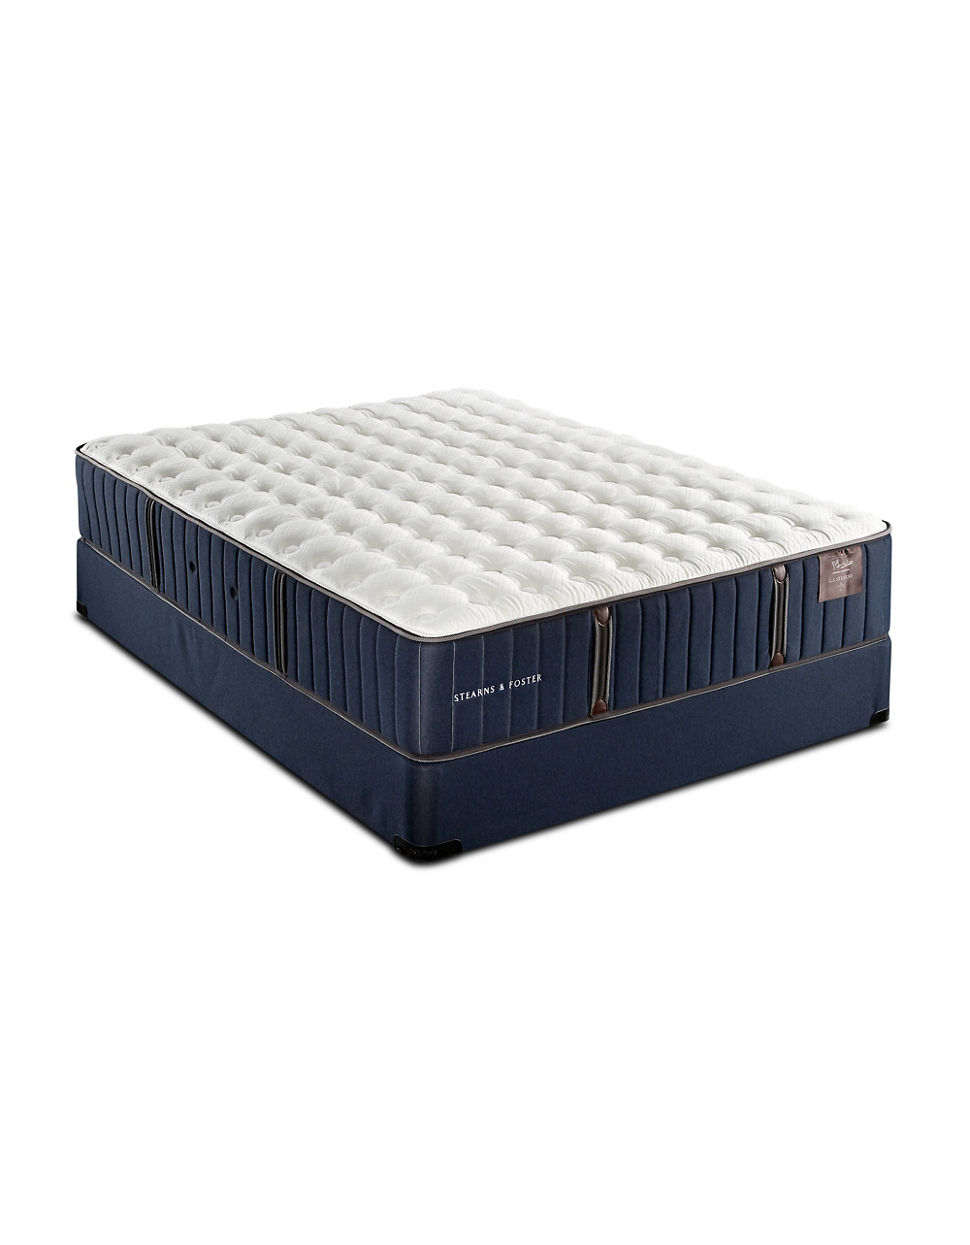 mattress naples buys wli world euro chiropractor luxury best intimate page specs top product recommended eob